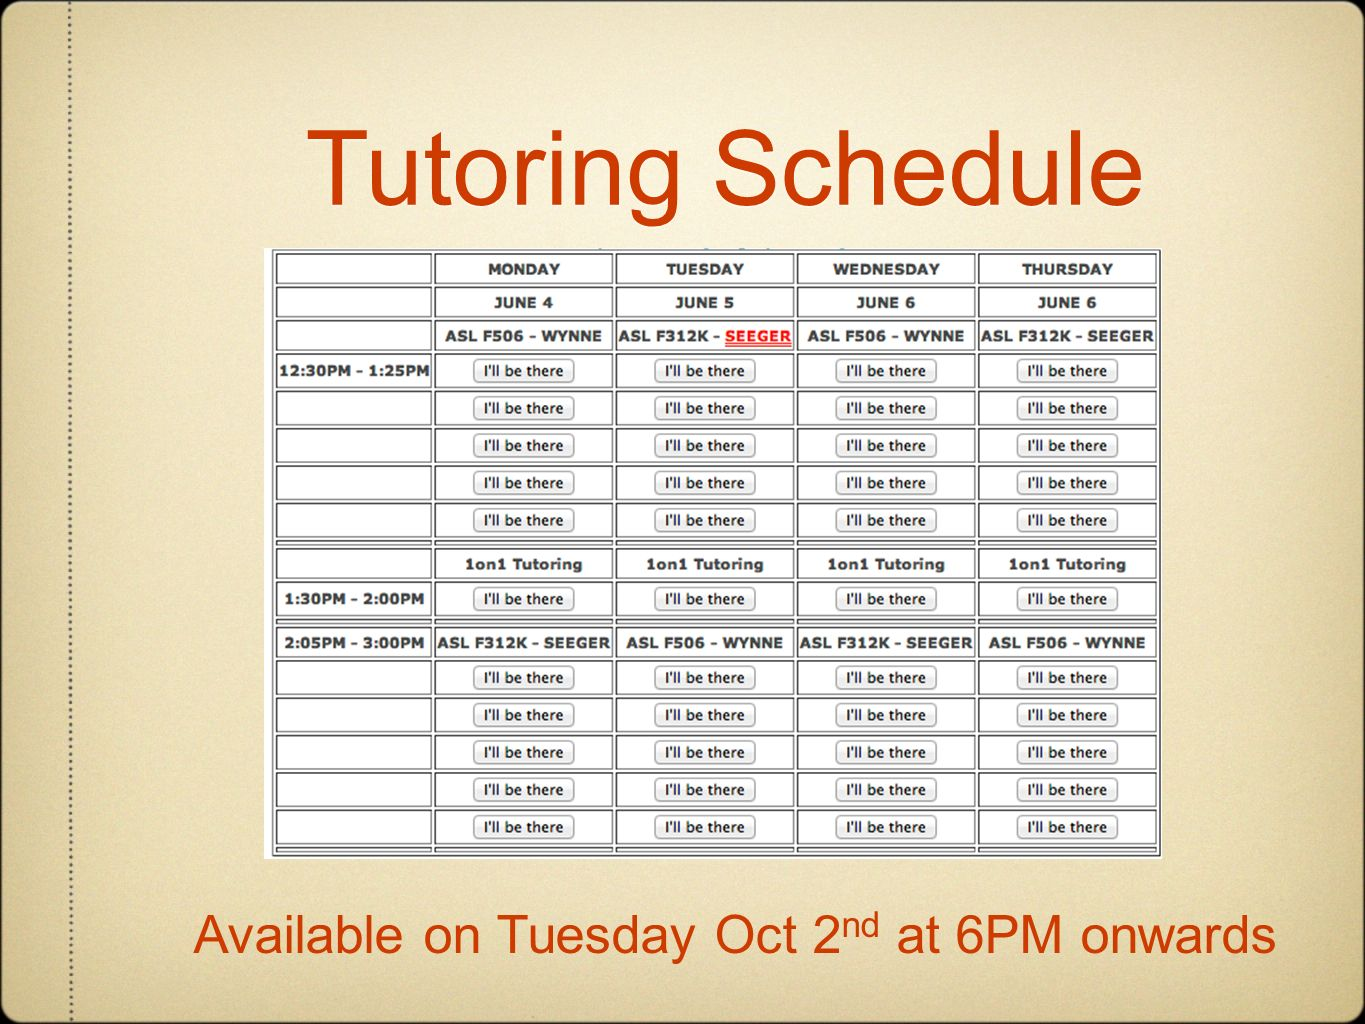 Tutoring Schedule Available on Tuesday Oct 2 nd at 6PM onwards